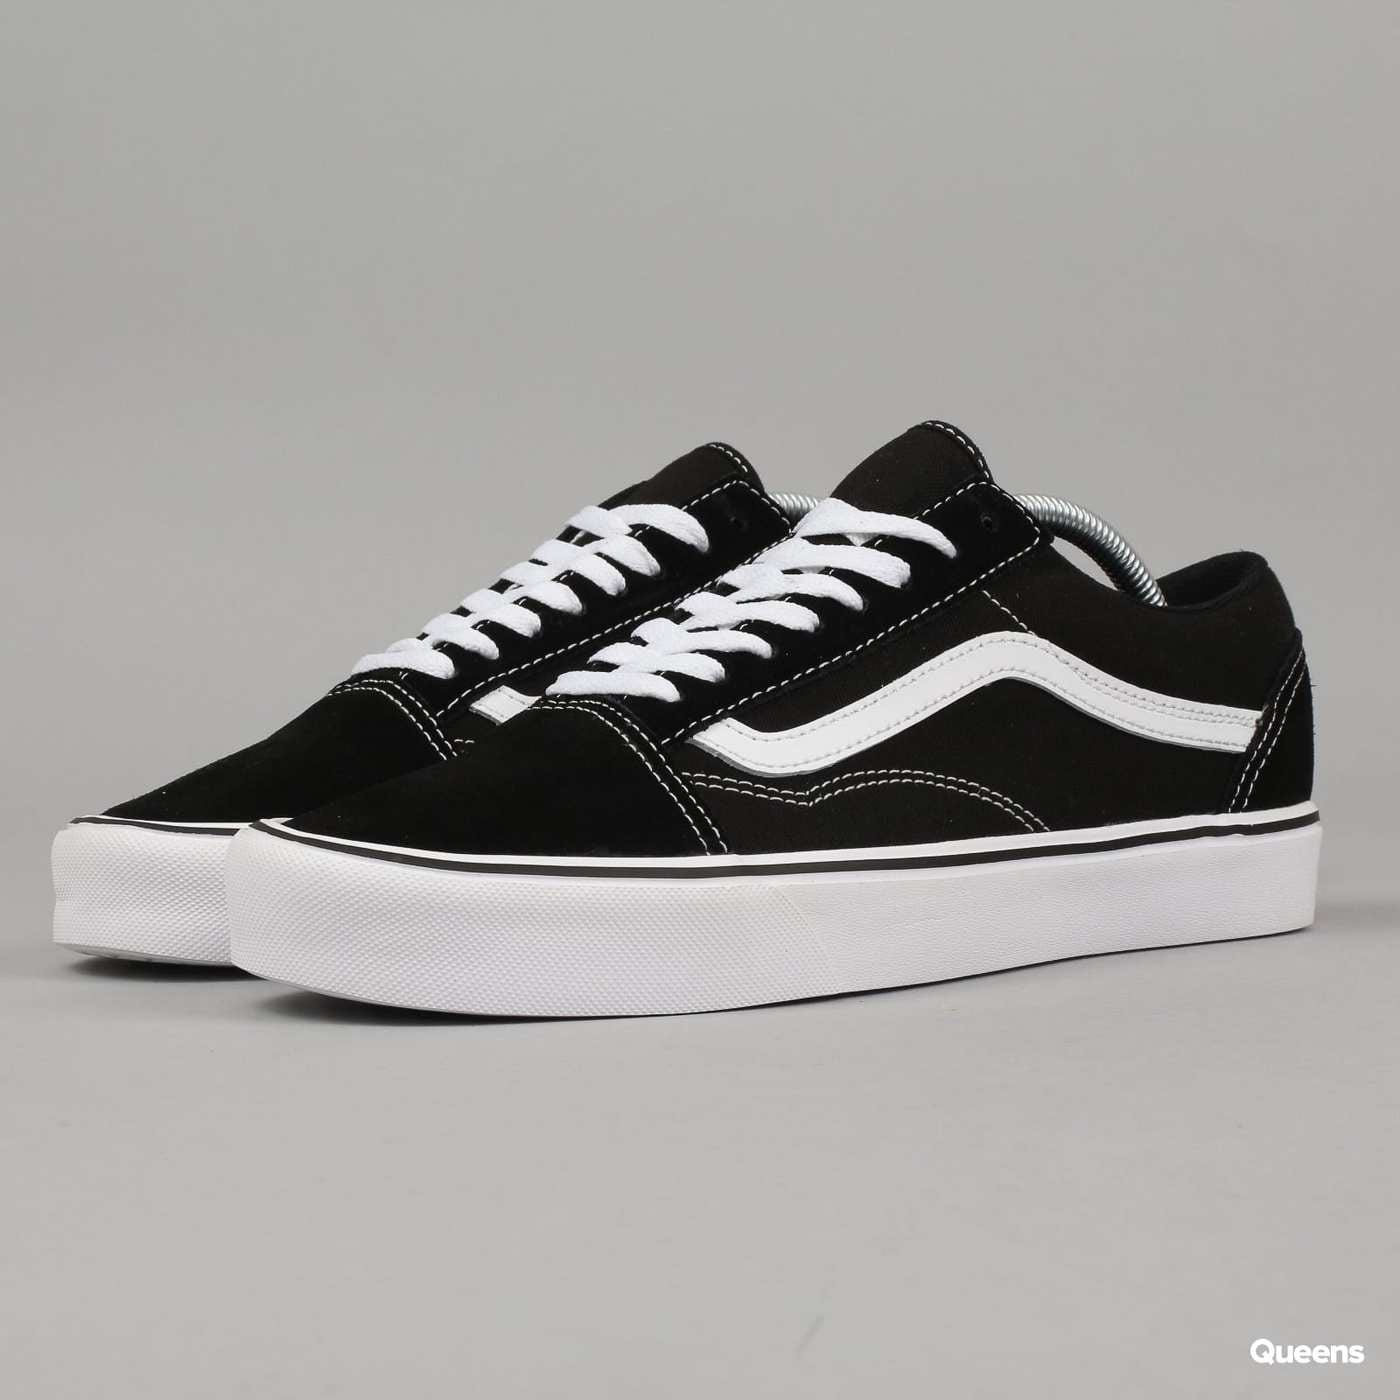 Boty Vans Old Skool Lite (VA2Z5WIJU) – Queens 💚 85d10fed634